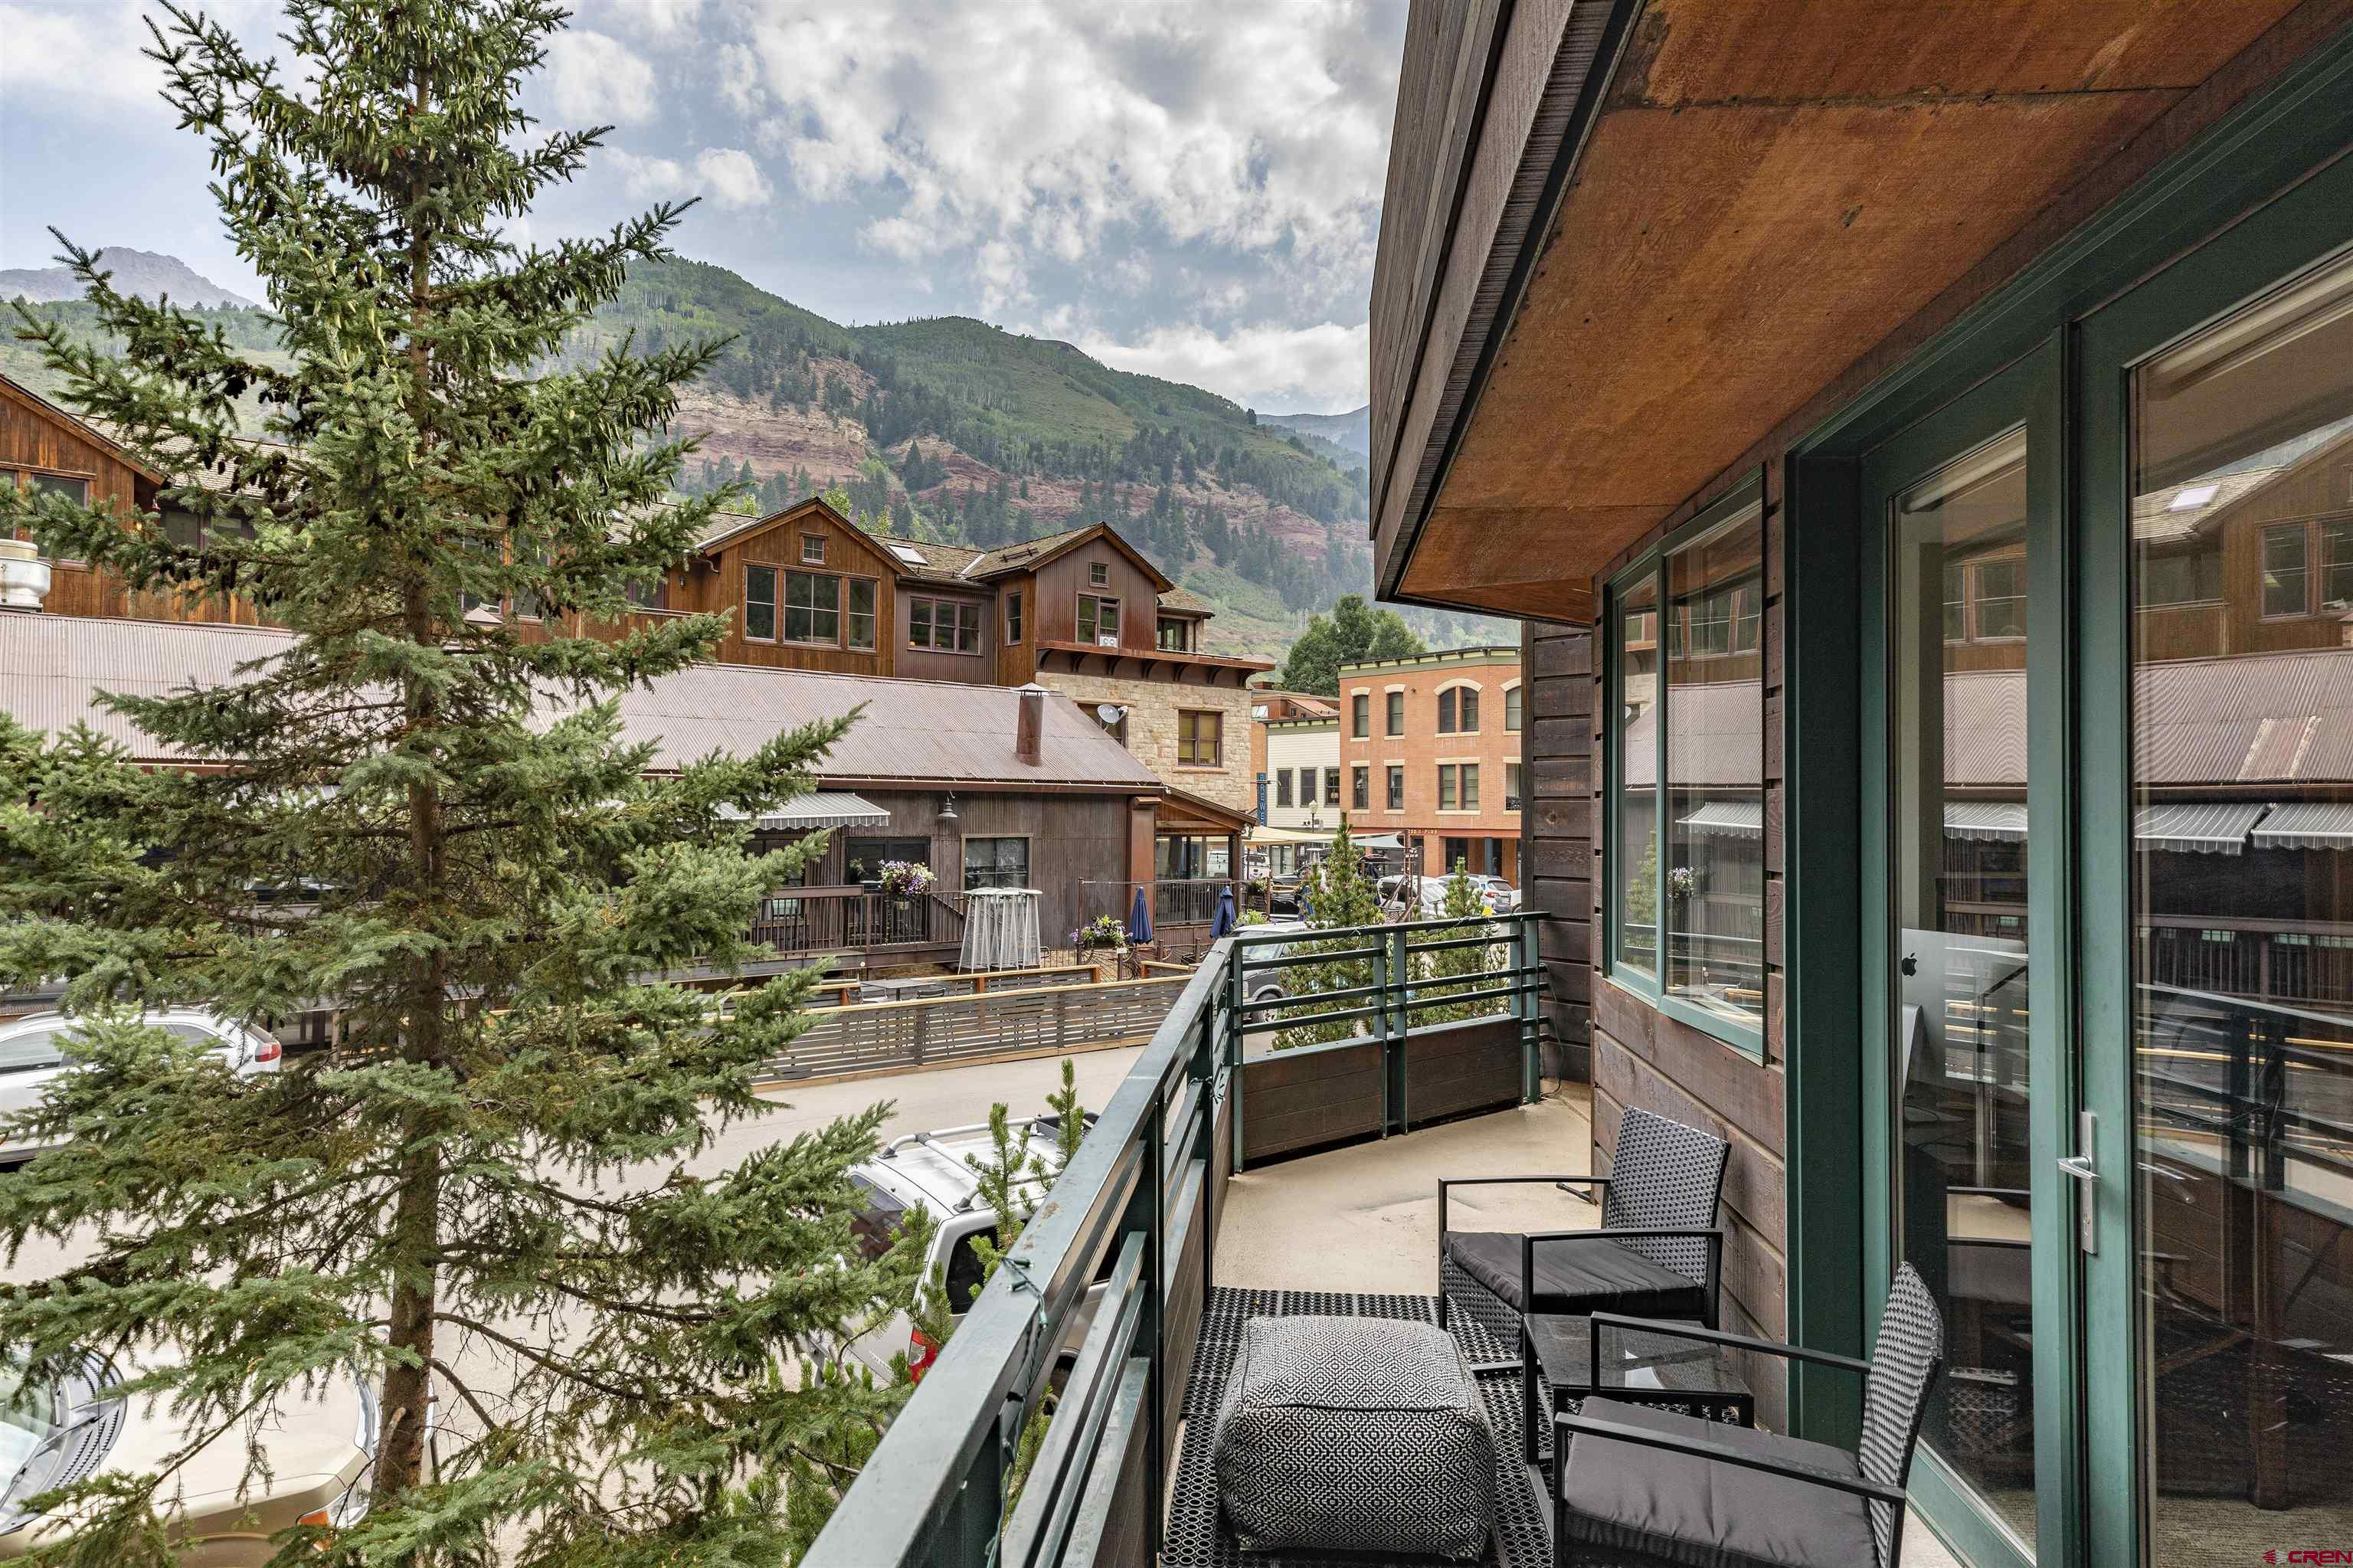 This 3 bedroom Ice House condominium is among the most convenient locations in town. Right in the center of it all, this condo is within steps to everything you need to enjoy Telluride's beautiful box canyon--two minutes to the gondola, two minutes to the heart of Colorado Ave (Main St), and two minutes to the Bear Creek trailhead. When you return home, the Ice House Condominiums offers sought after amenities including heated garage parking, a steam sauna, hot tub, heated indoor/outdoor pool, and private ski lockers. Life doesn't get much better than this! Interior photos coming soon.